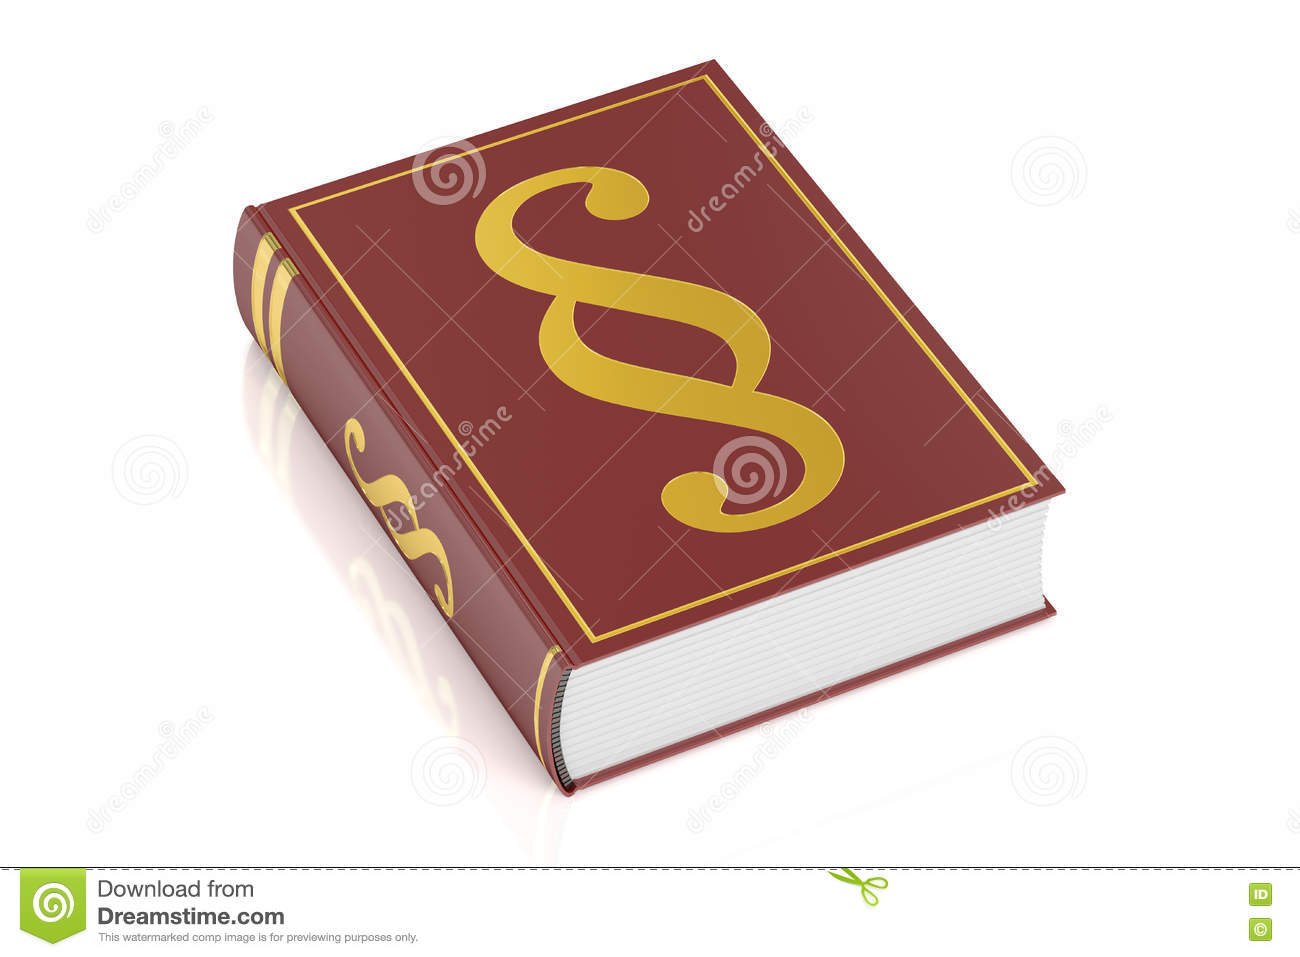 Book of justice, book with paragraph symbol, 3D rendering